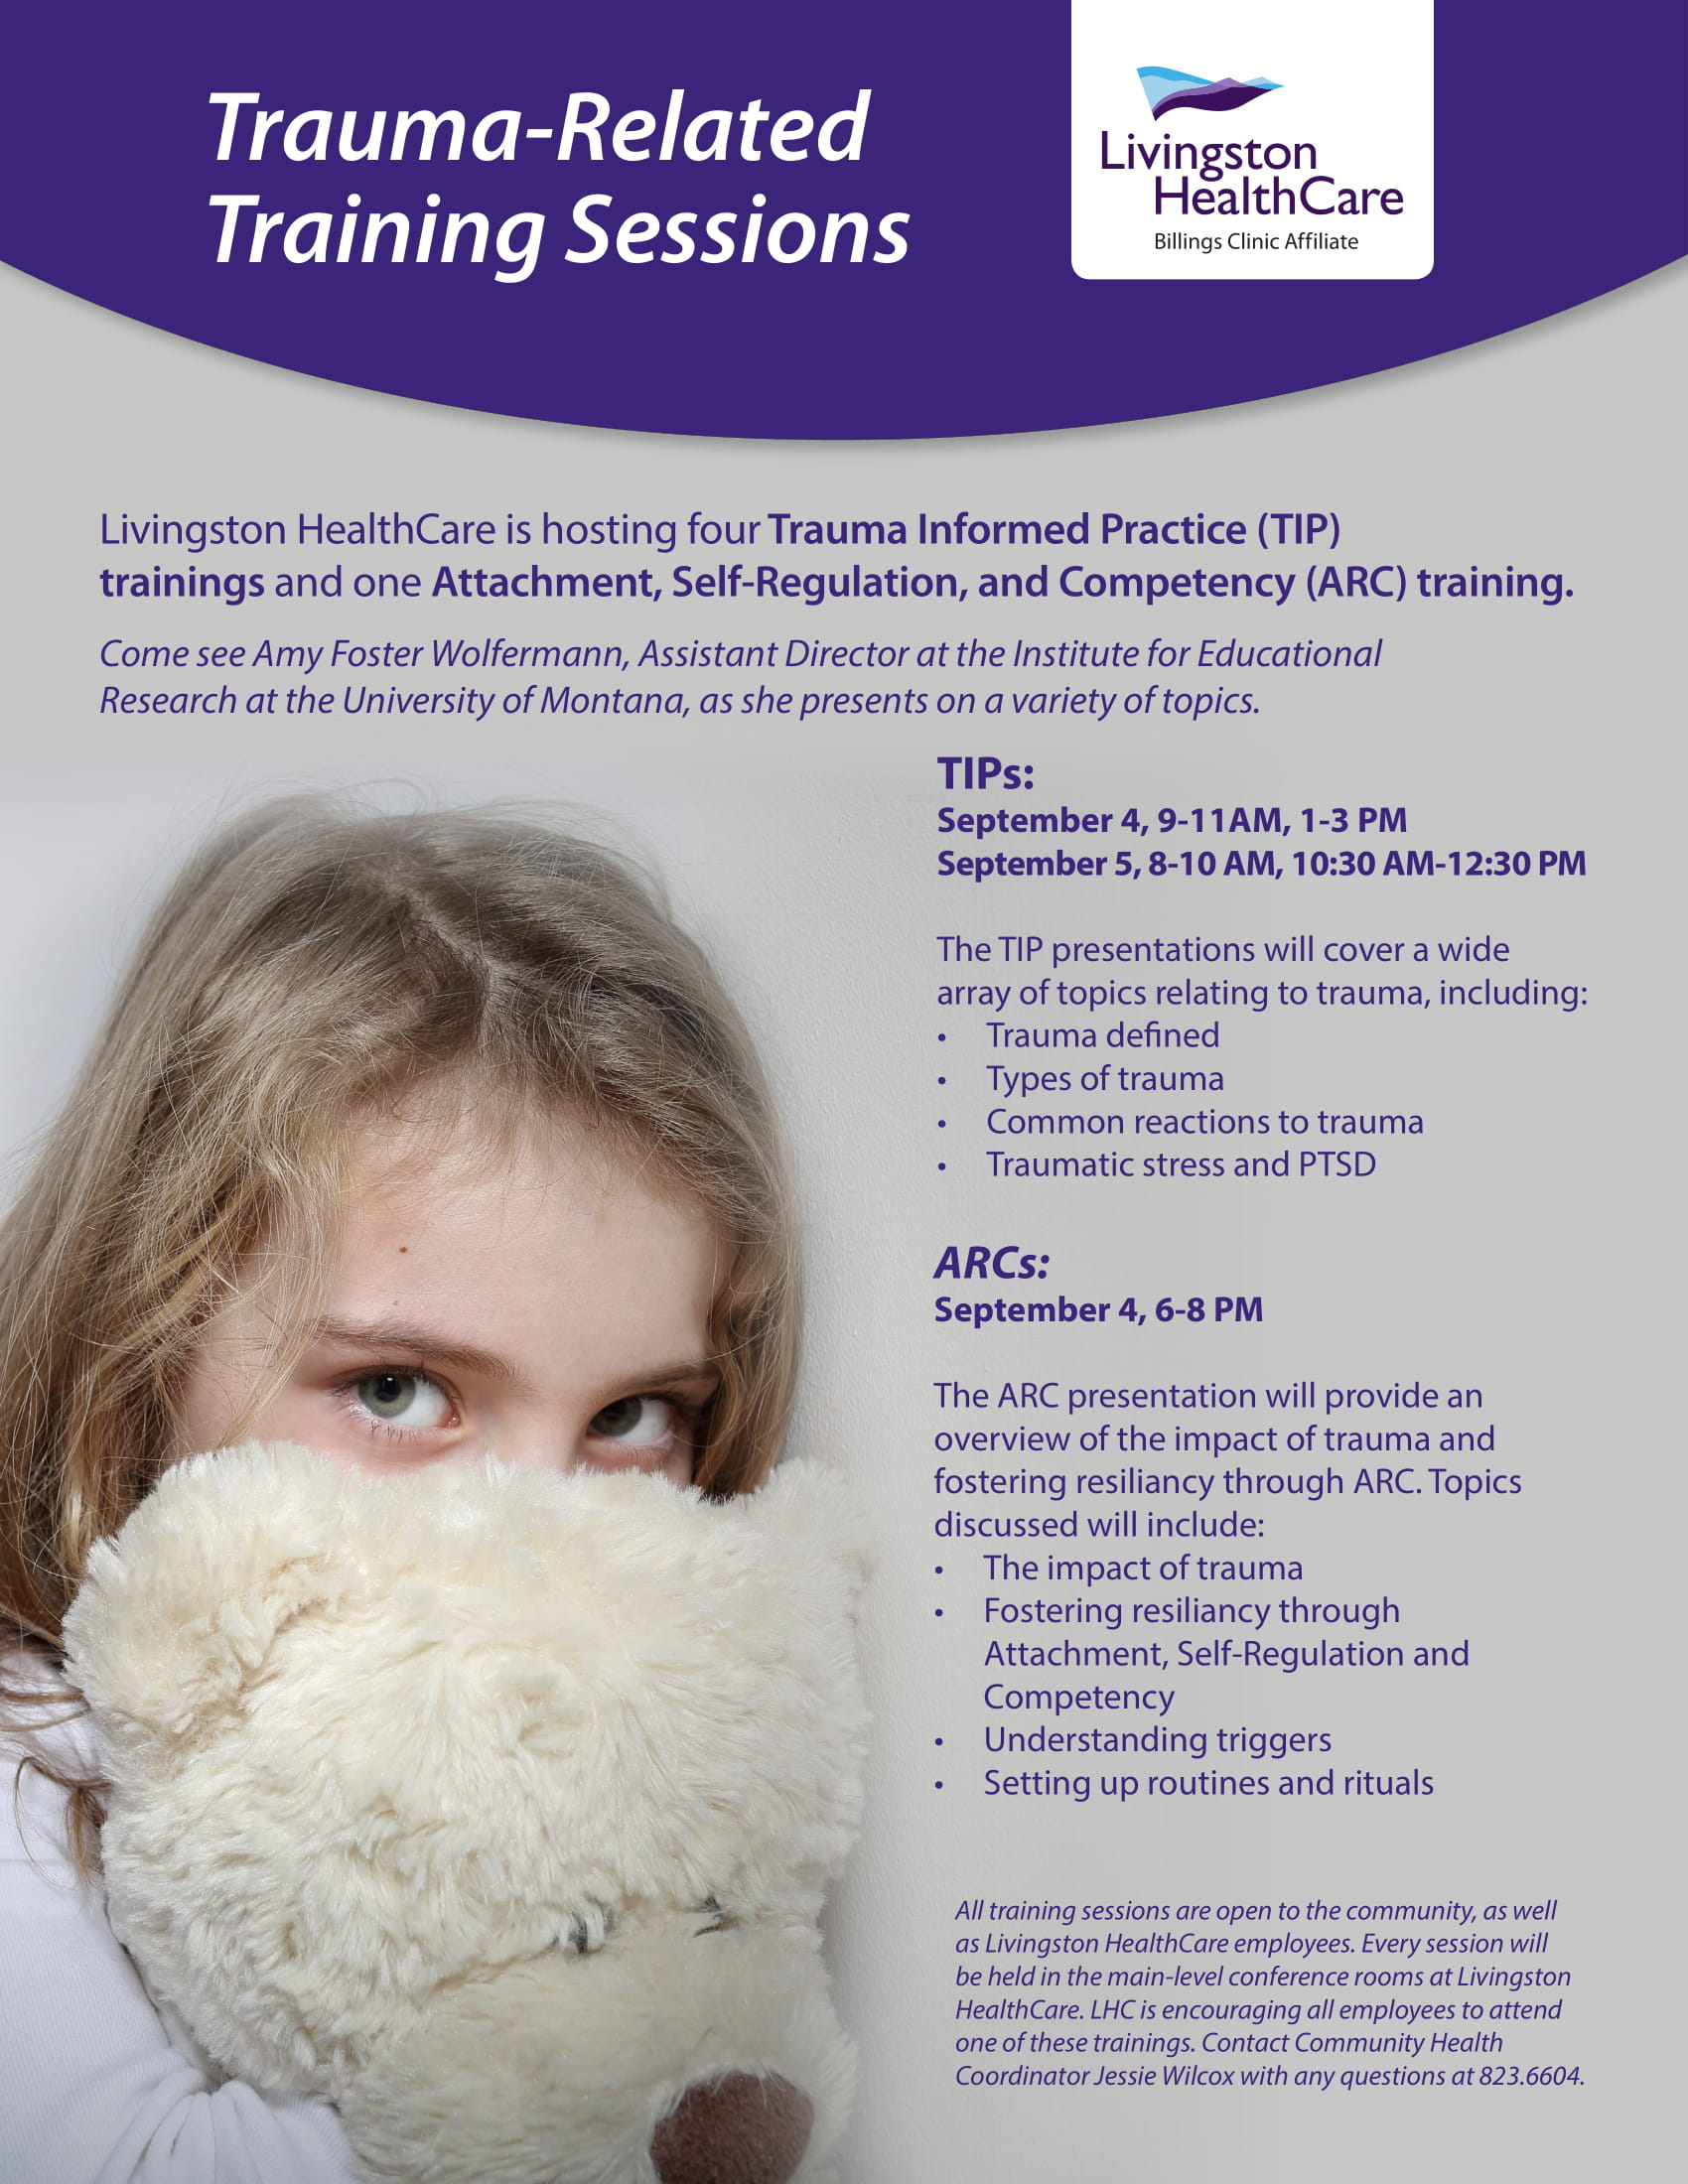 ARC (Attachment, Self-Regulation and Competency) Training